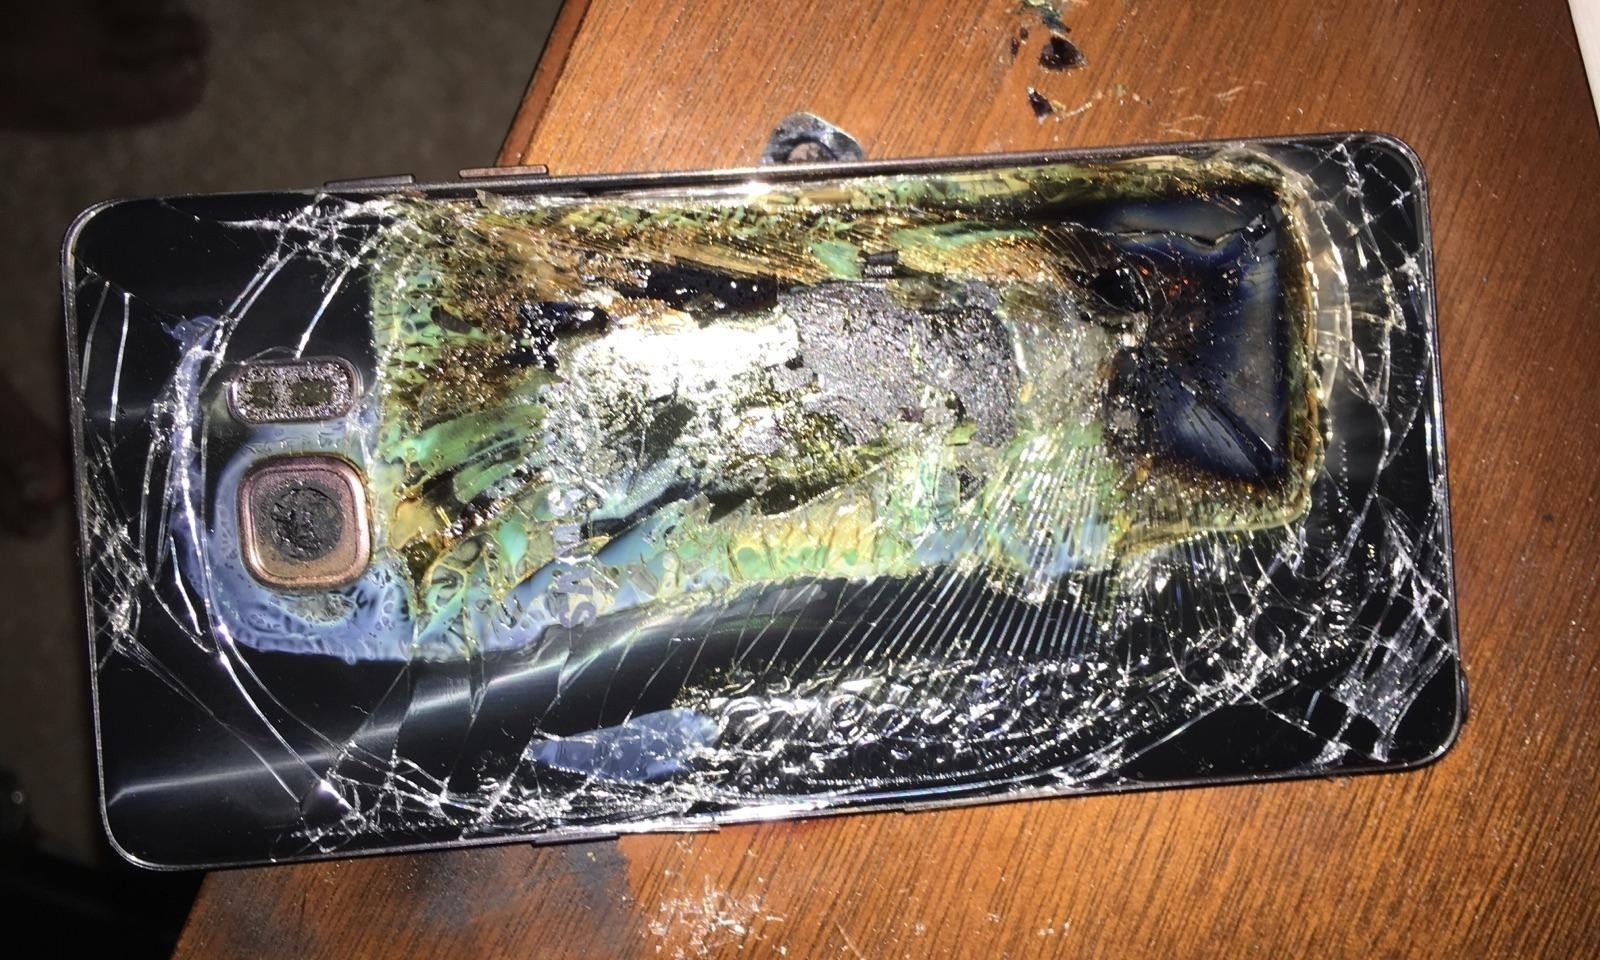 Samsung owners furious as company resists paying up for Note 7 fire damage